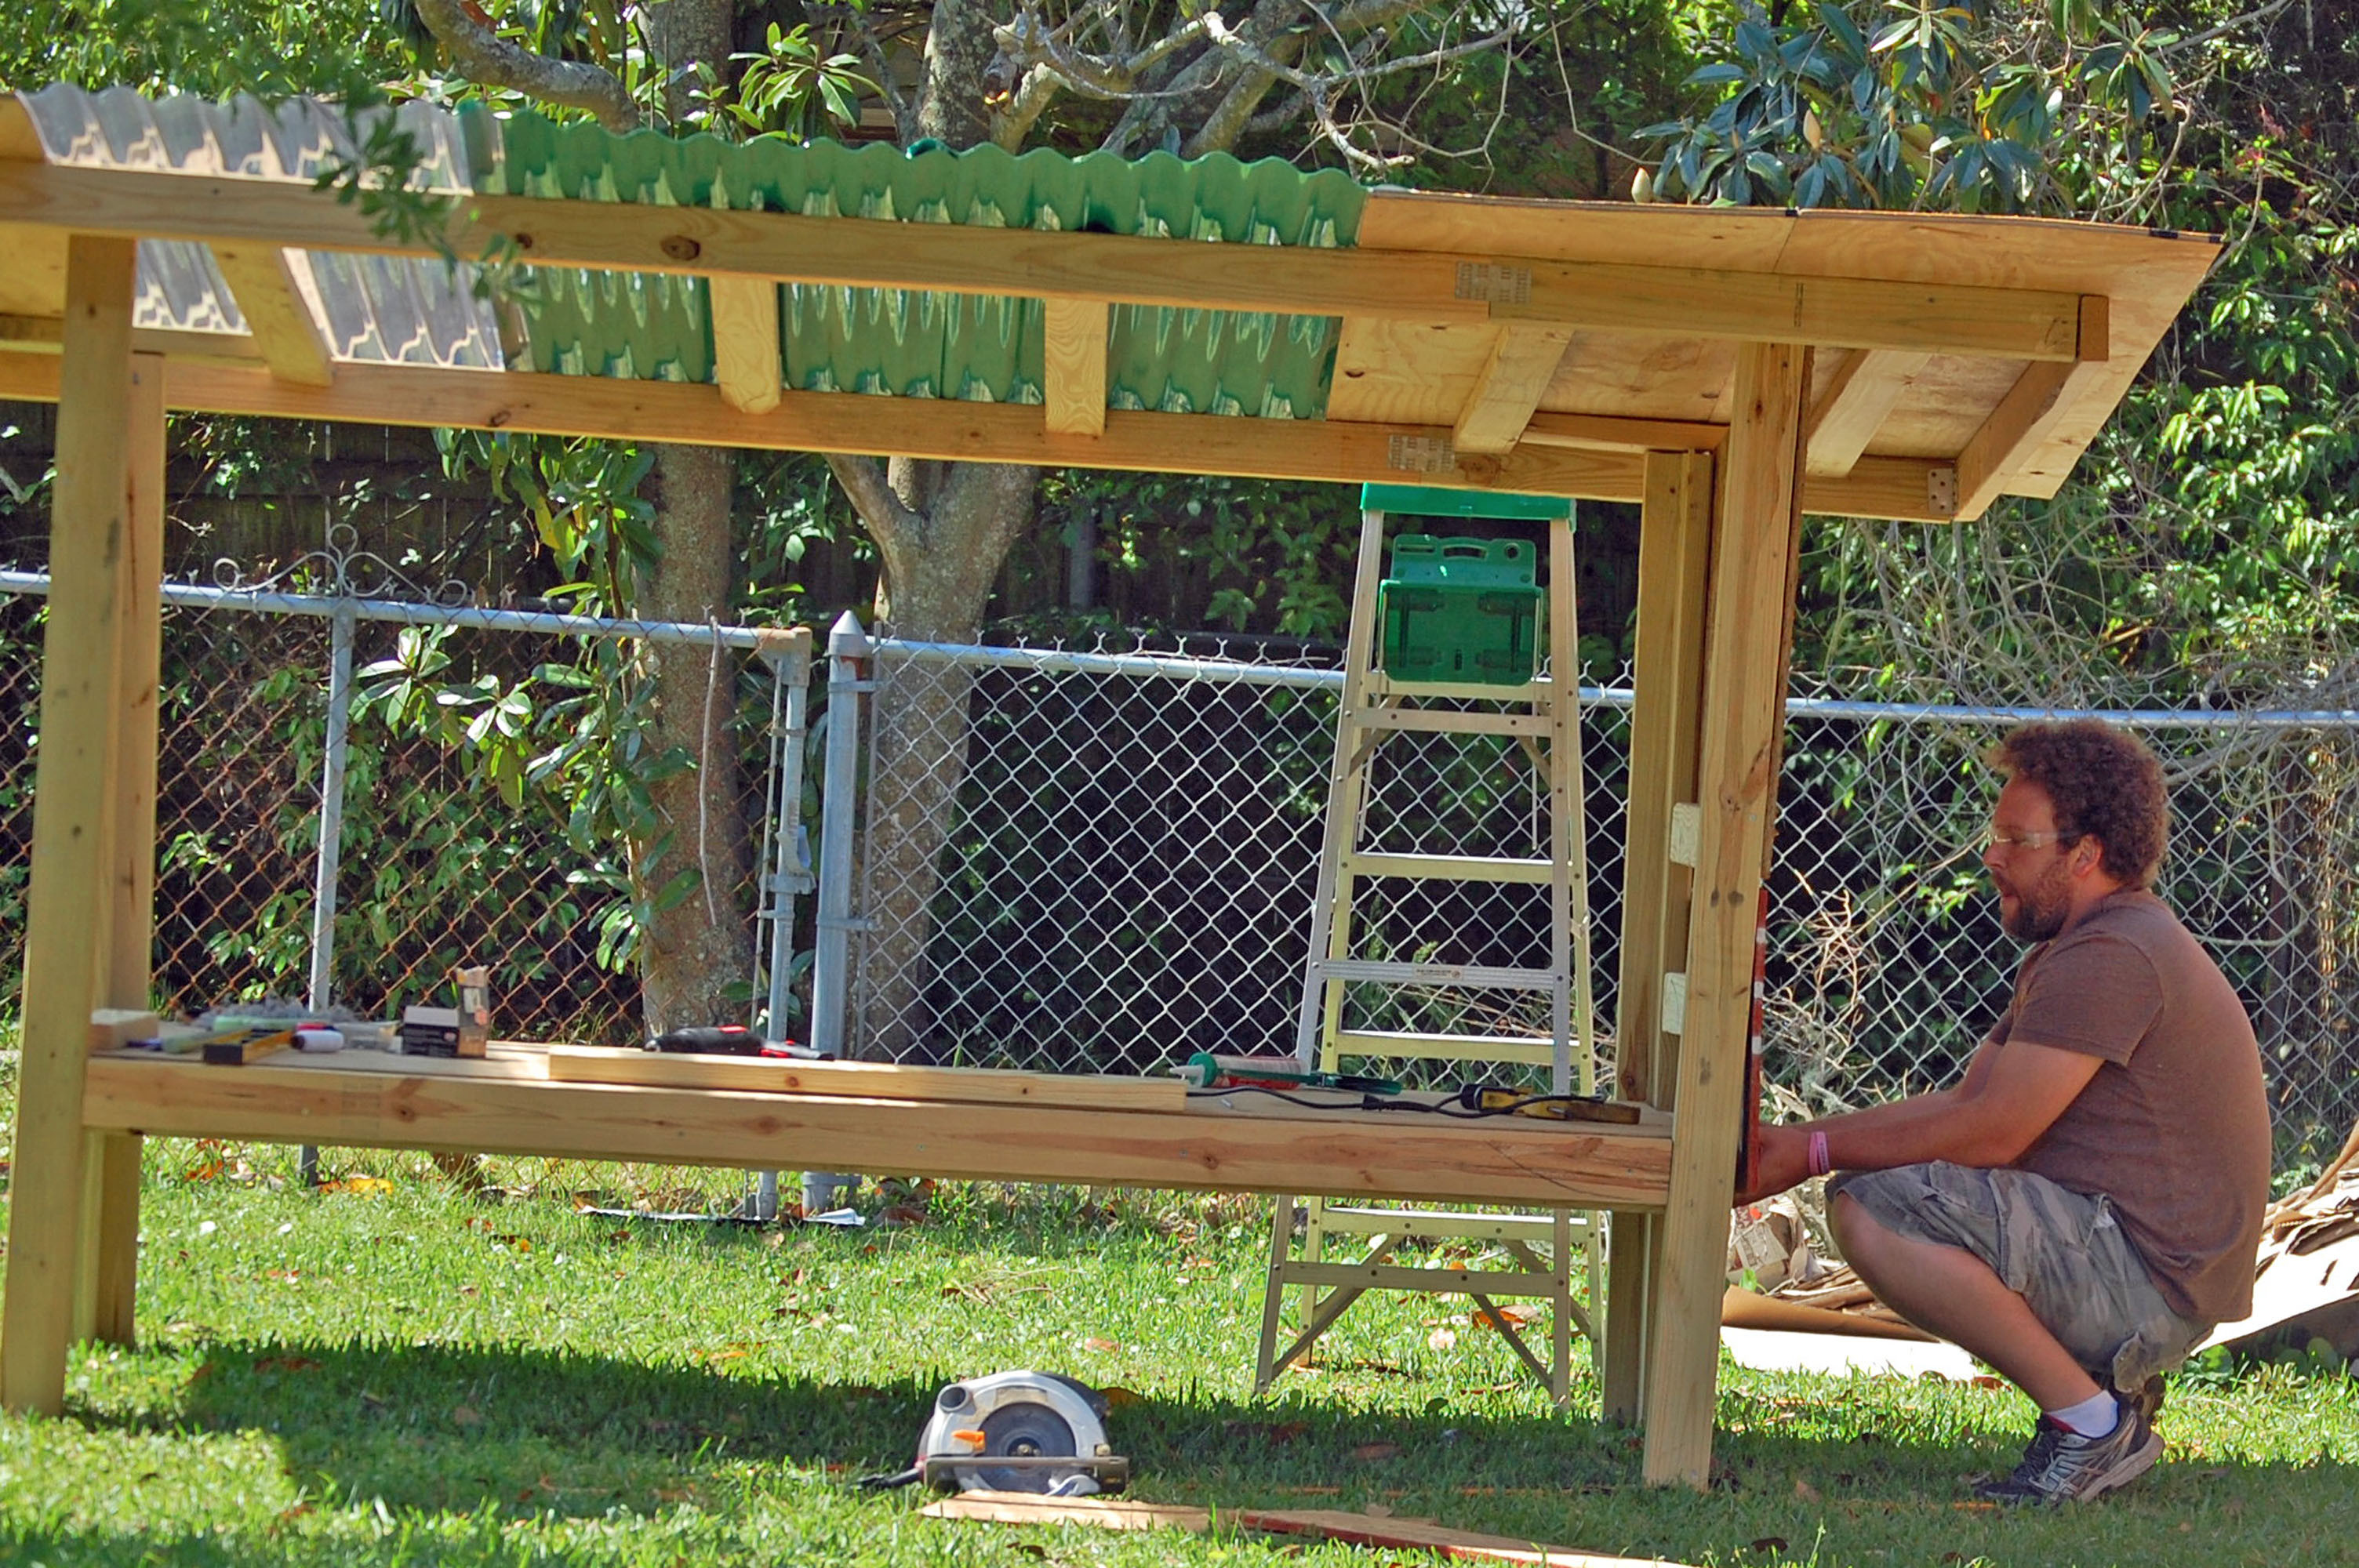 Best ideas about DIY Chicken Coops . Save or Pin Our DIY Chicken Coop From Recycled Materials Now.